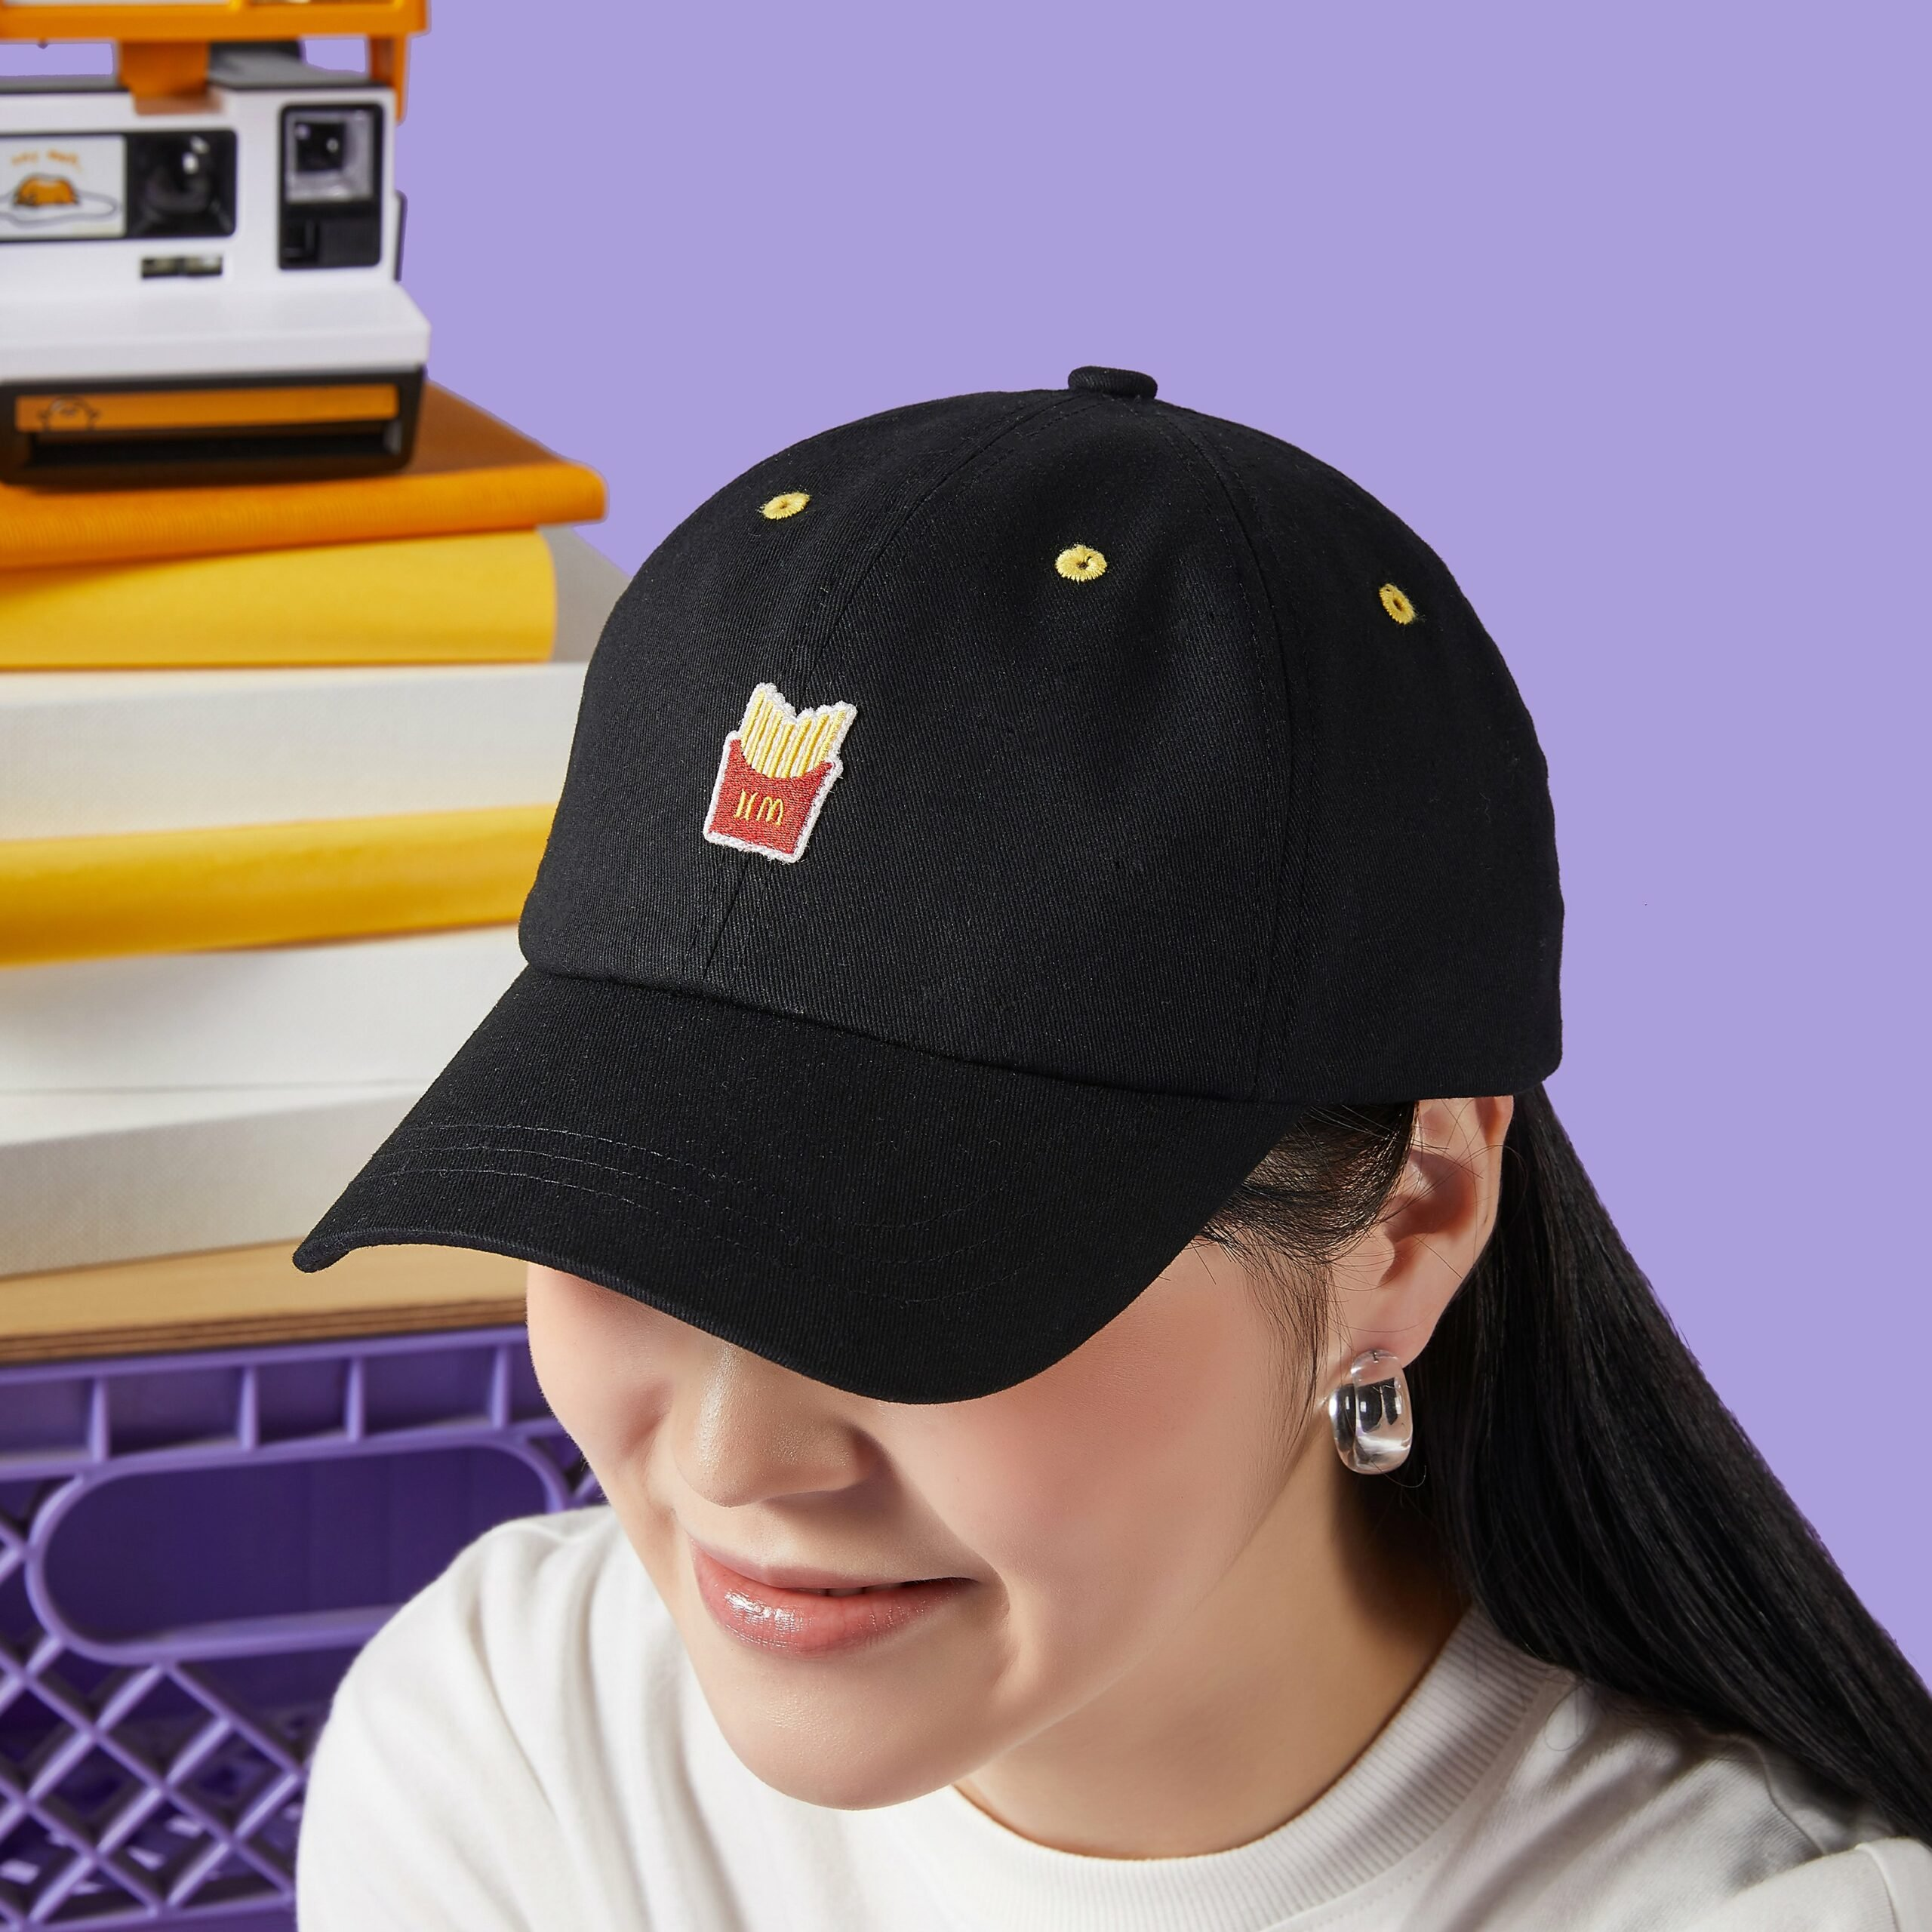 McDonald's BTS Meal arrives in the U.S. with limited-edition merch 21